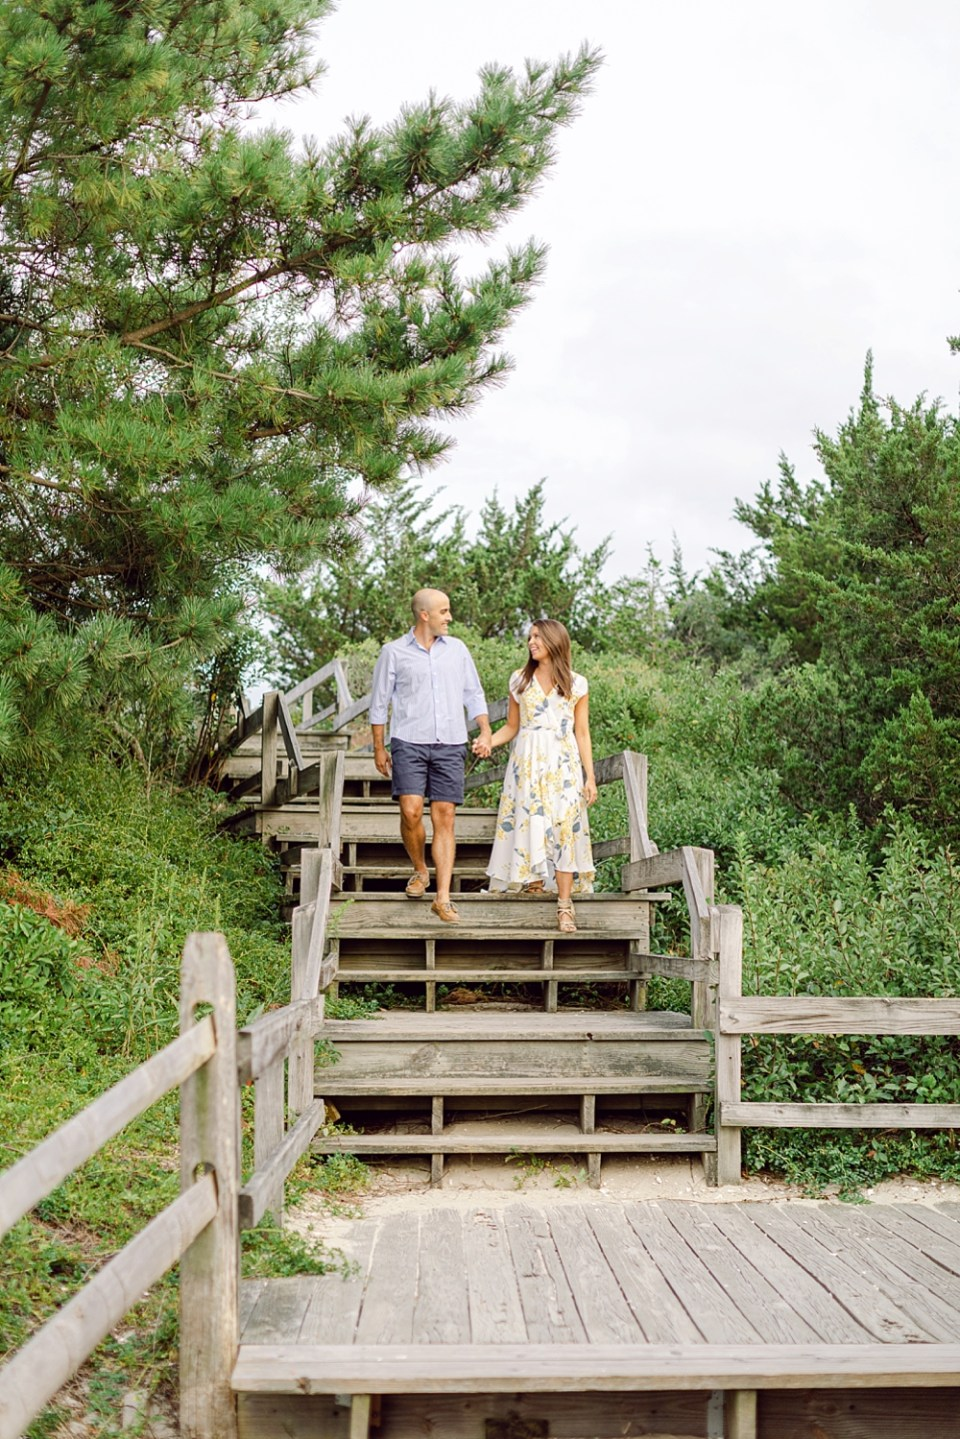 Long Beach Island Engagement Session | philadelphia wedding photographer sarah canning